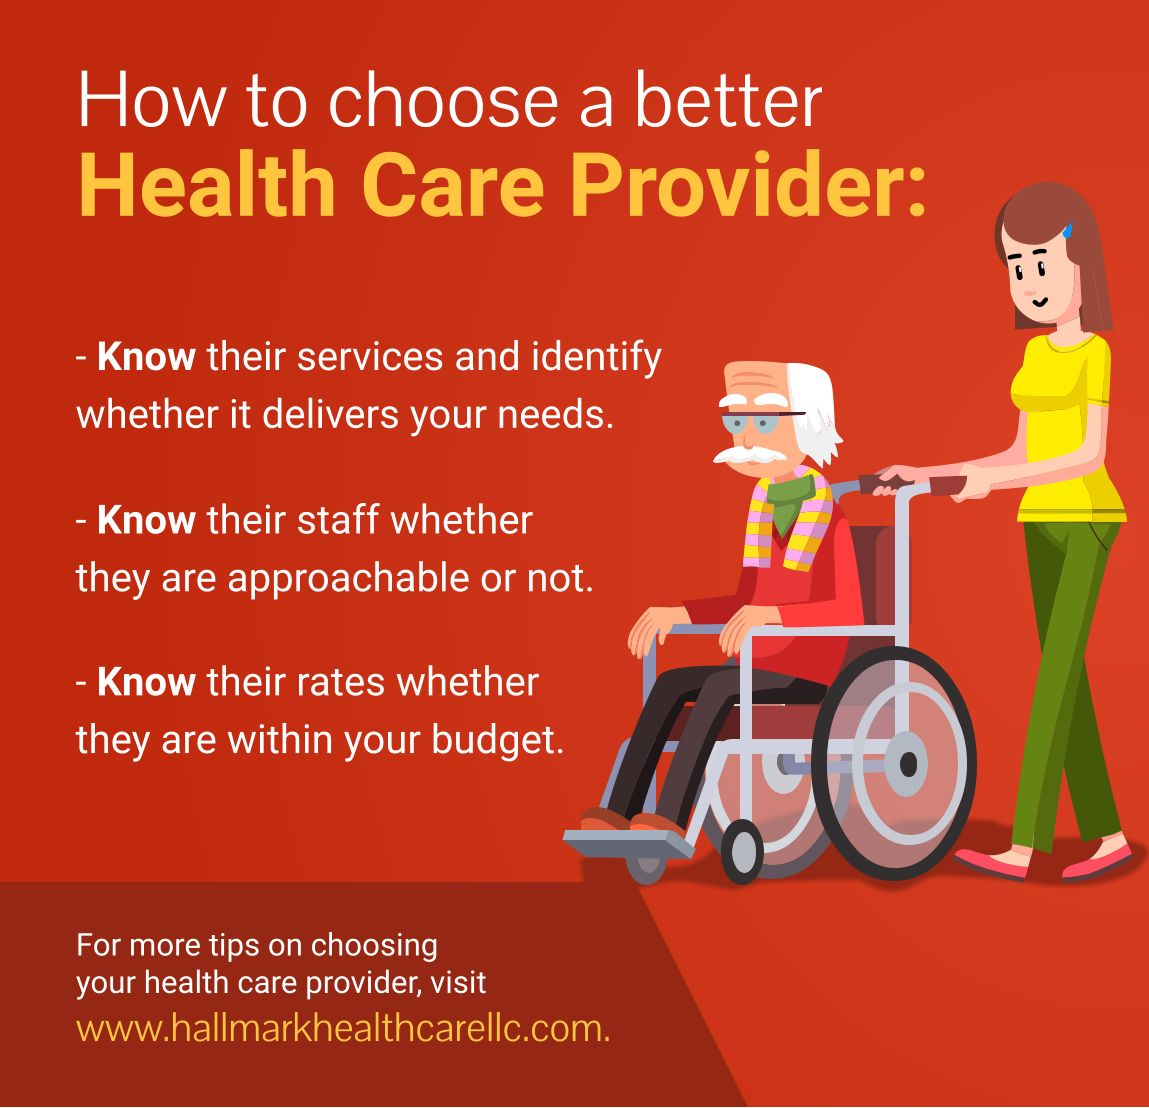 For more tips on choosing your health care provider visit